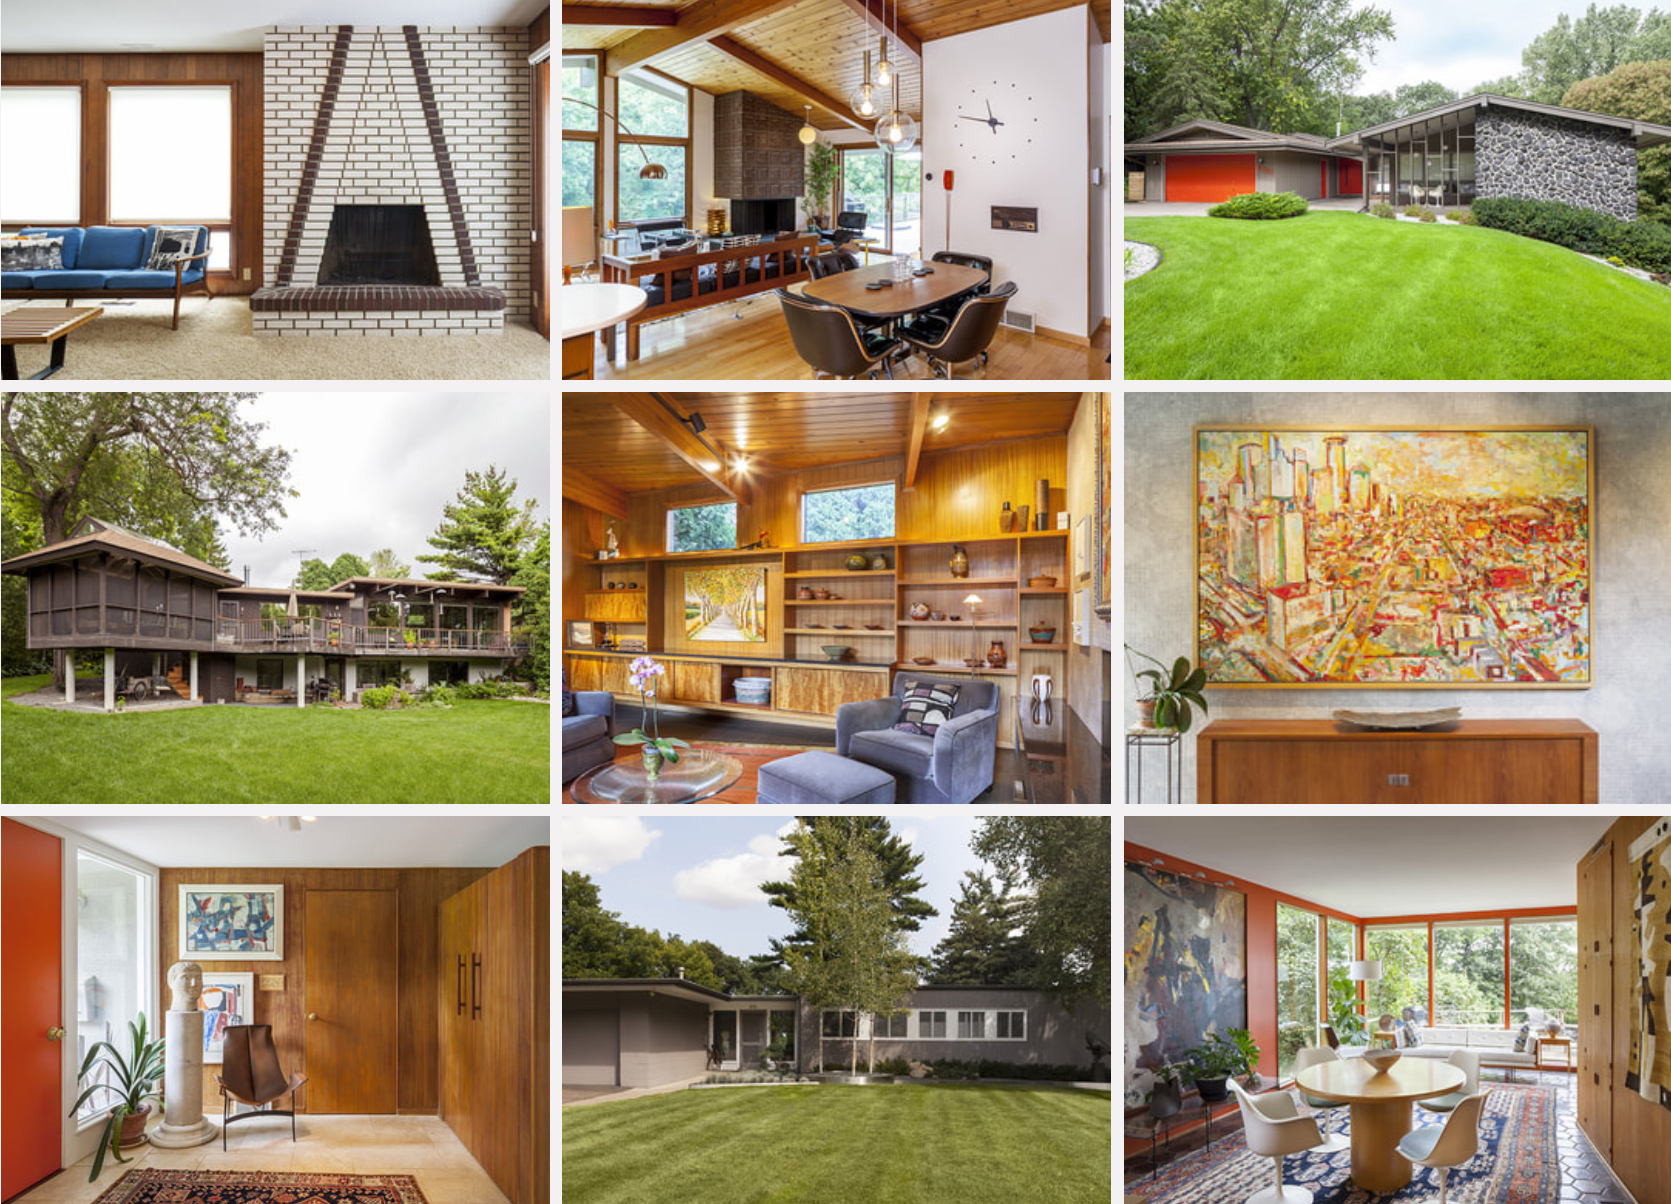 Extraordinary Homes October Docomomo Has Seven Midcentury Homes Opento Tour Ticket Hers Tour Day October Tour houzz-03 Mid Century Modern Homes